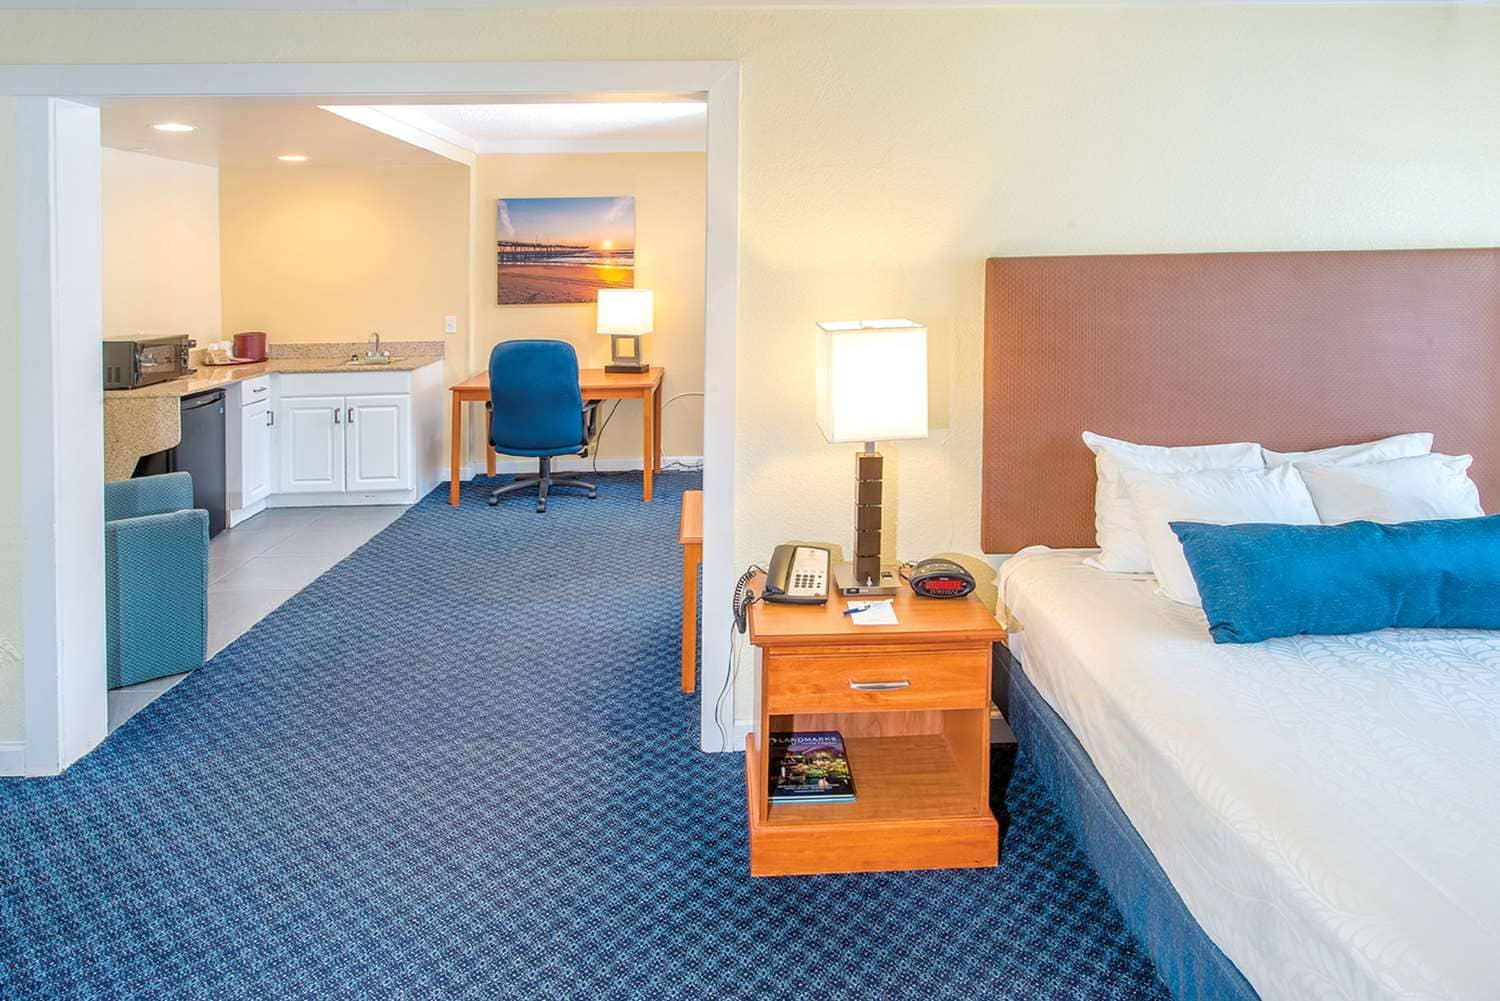 our parlor suites offer 1 queen bed and are located in our non oceanfront building located across the street from the main hotel - Cheap Hotels In Virginia Beach With Kitchenette